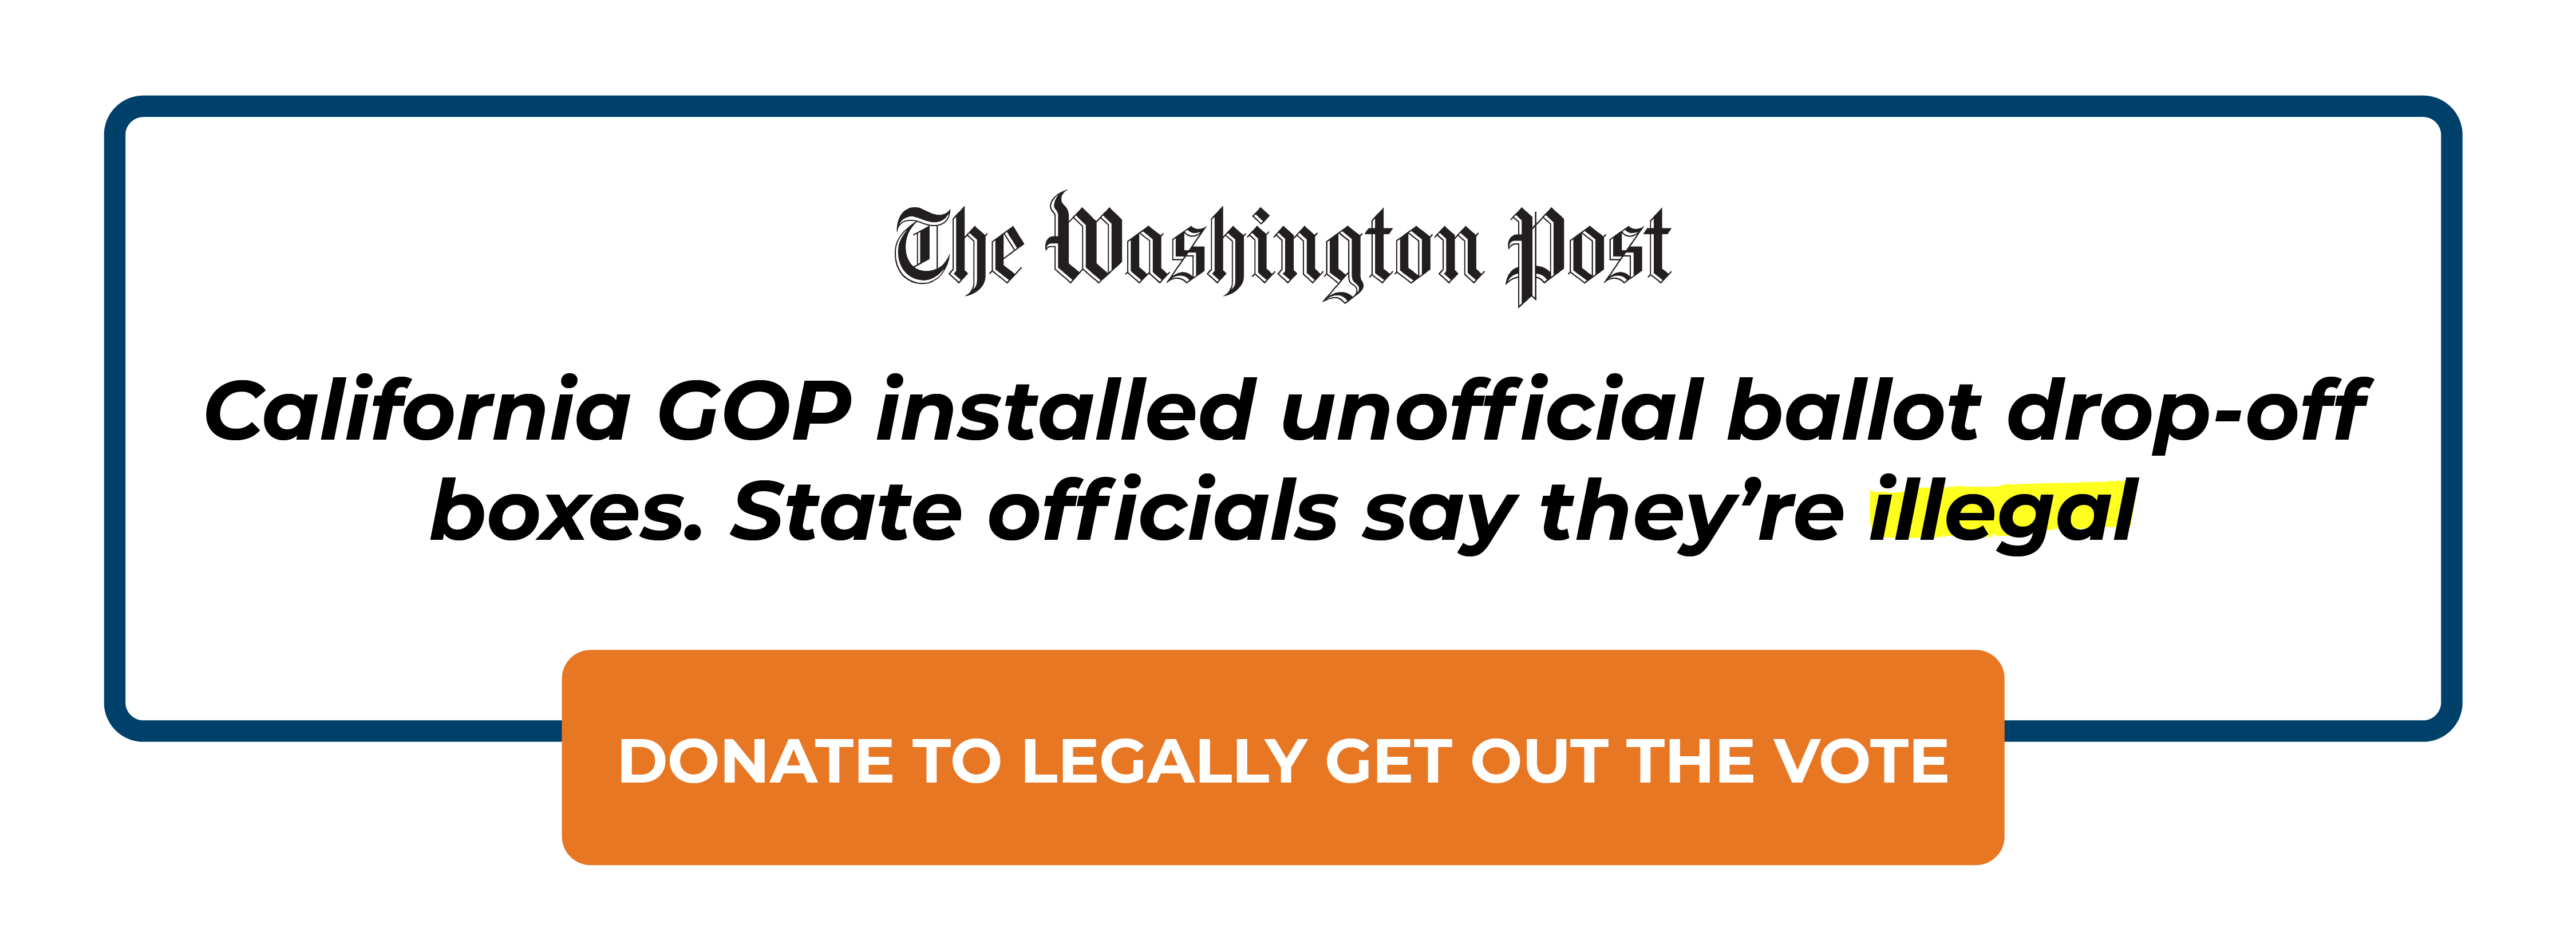 The Washington Post: Caifornia GOP installed unofficial ballot drop-off boxes. State officials say theyre illegal. Donate to legally get out the vote >>